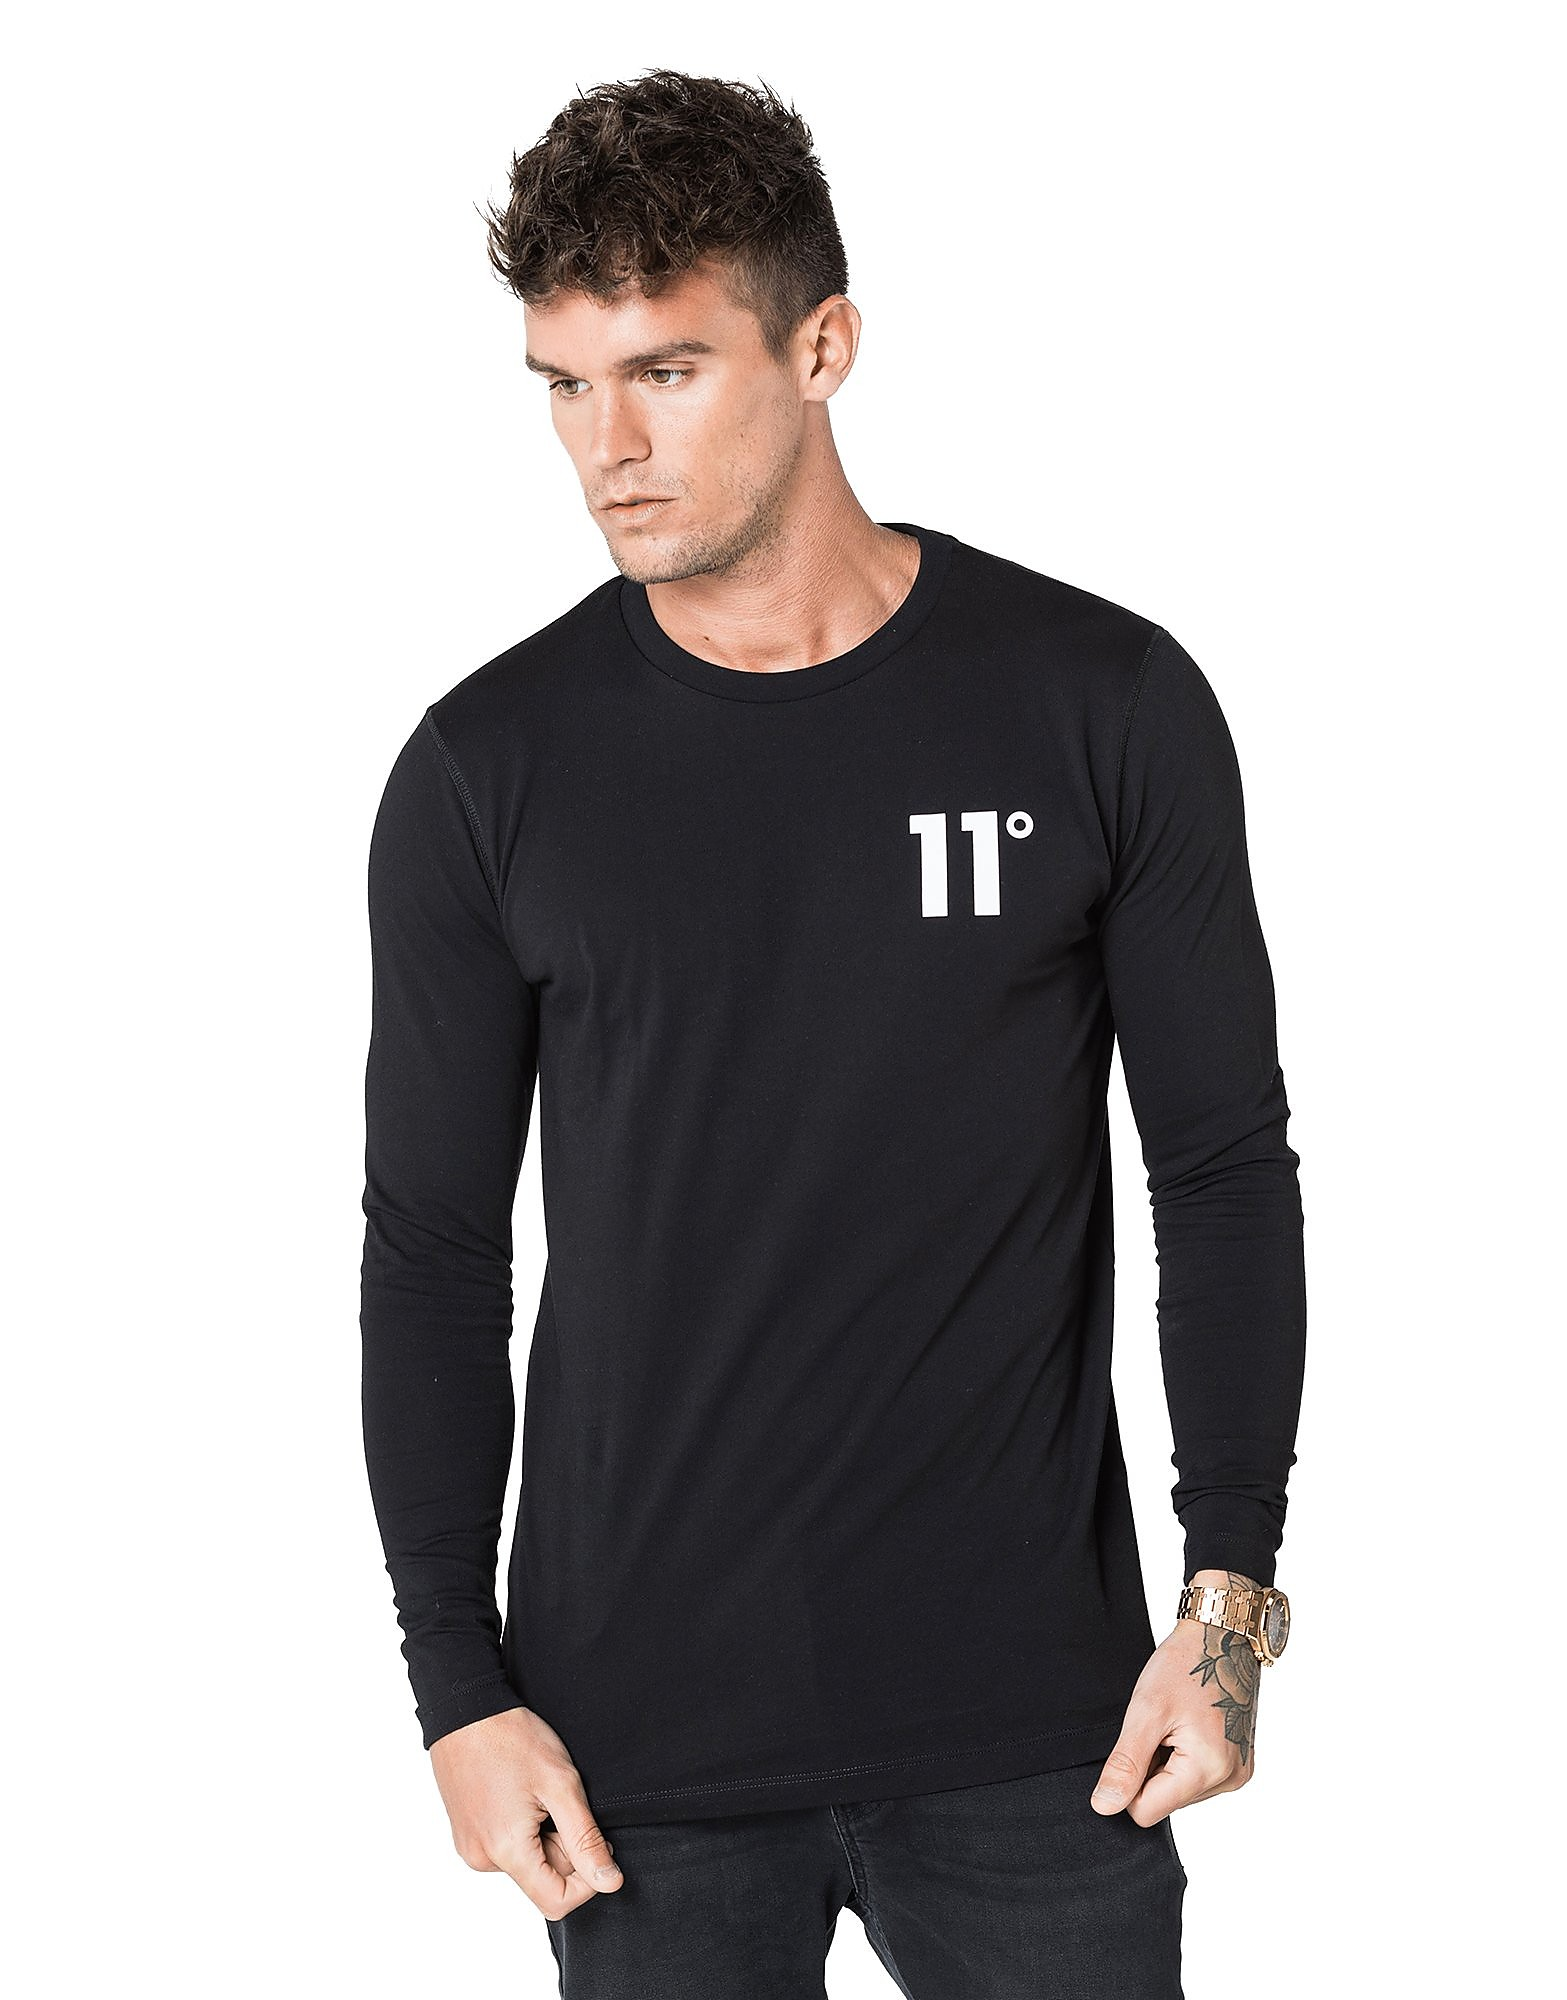 11 Degrees Core Small Logo Longsleeve T-Shirt